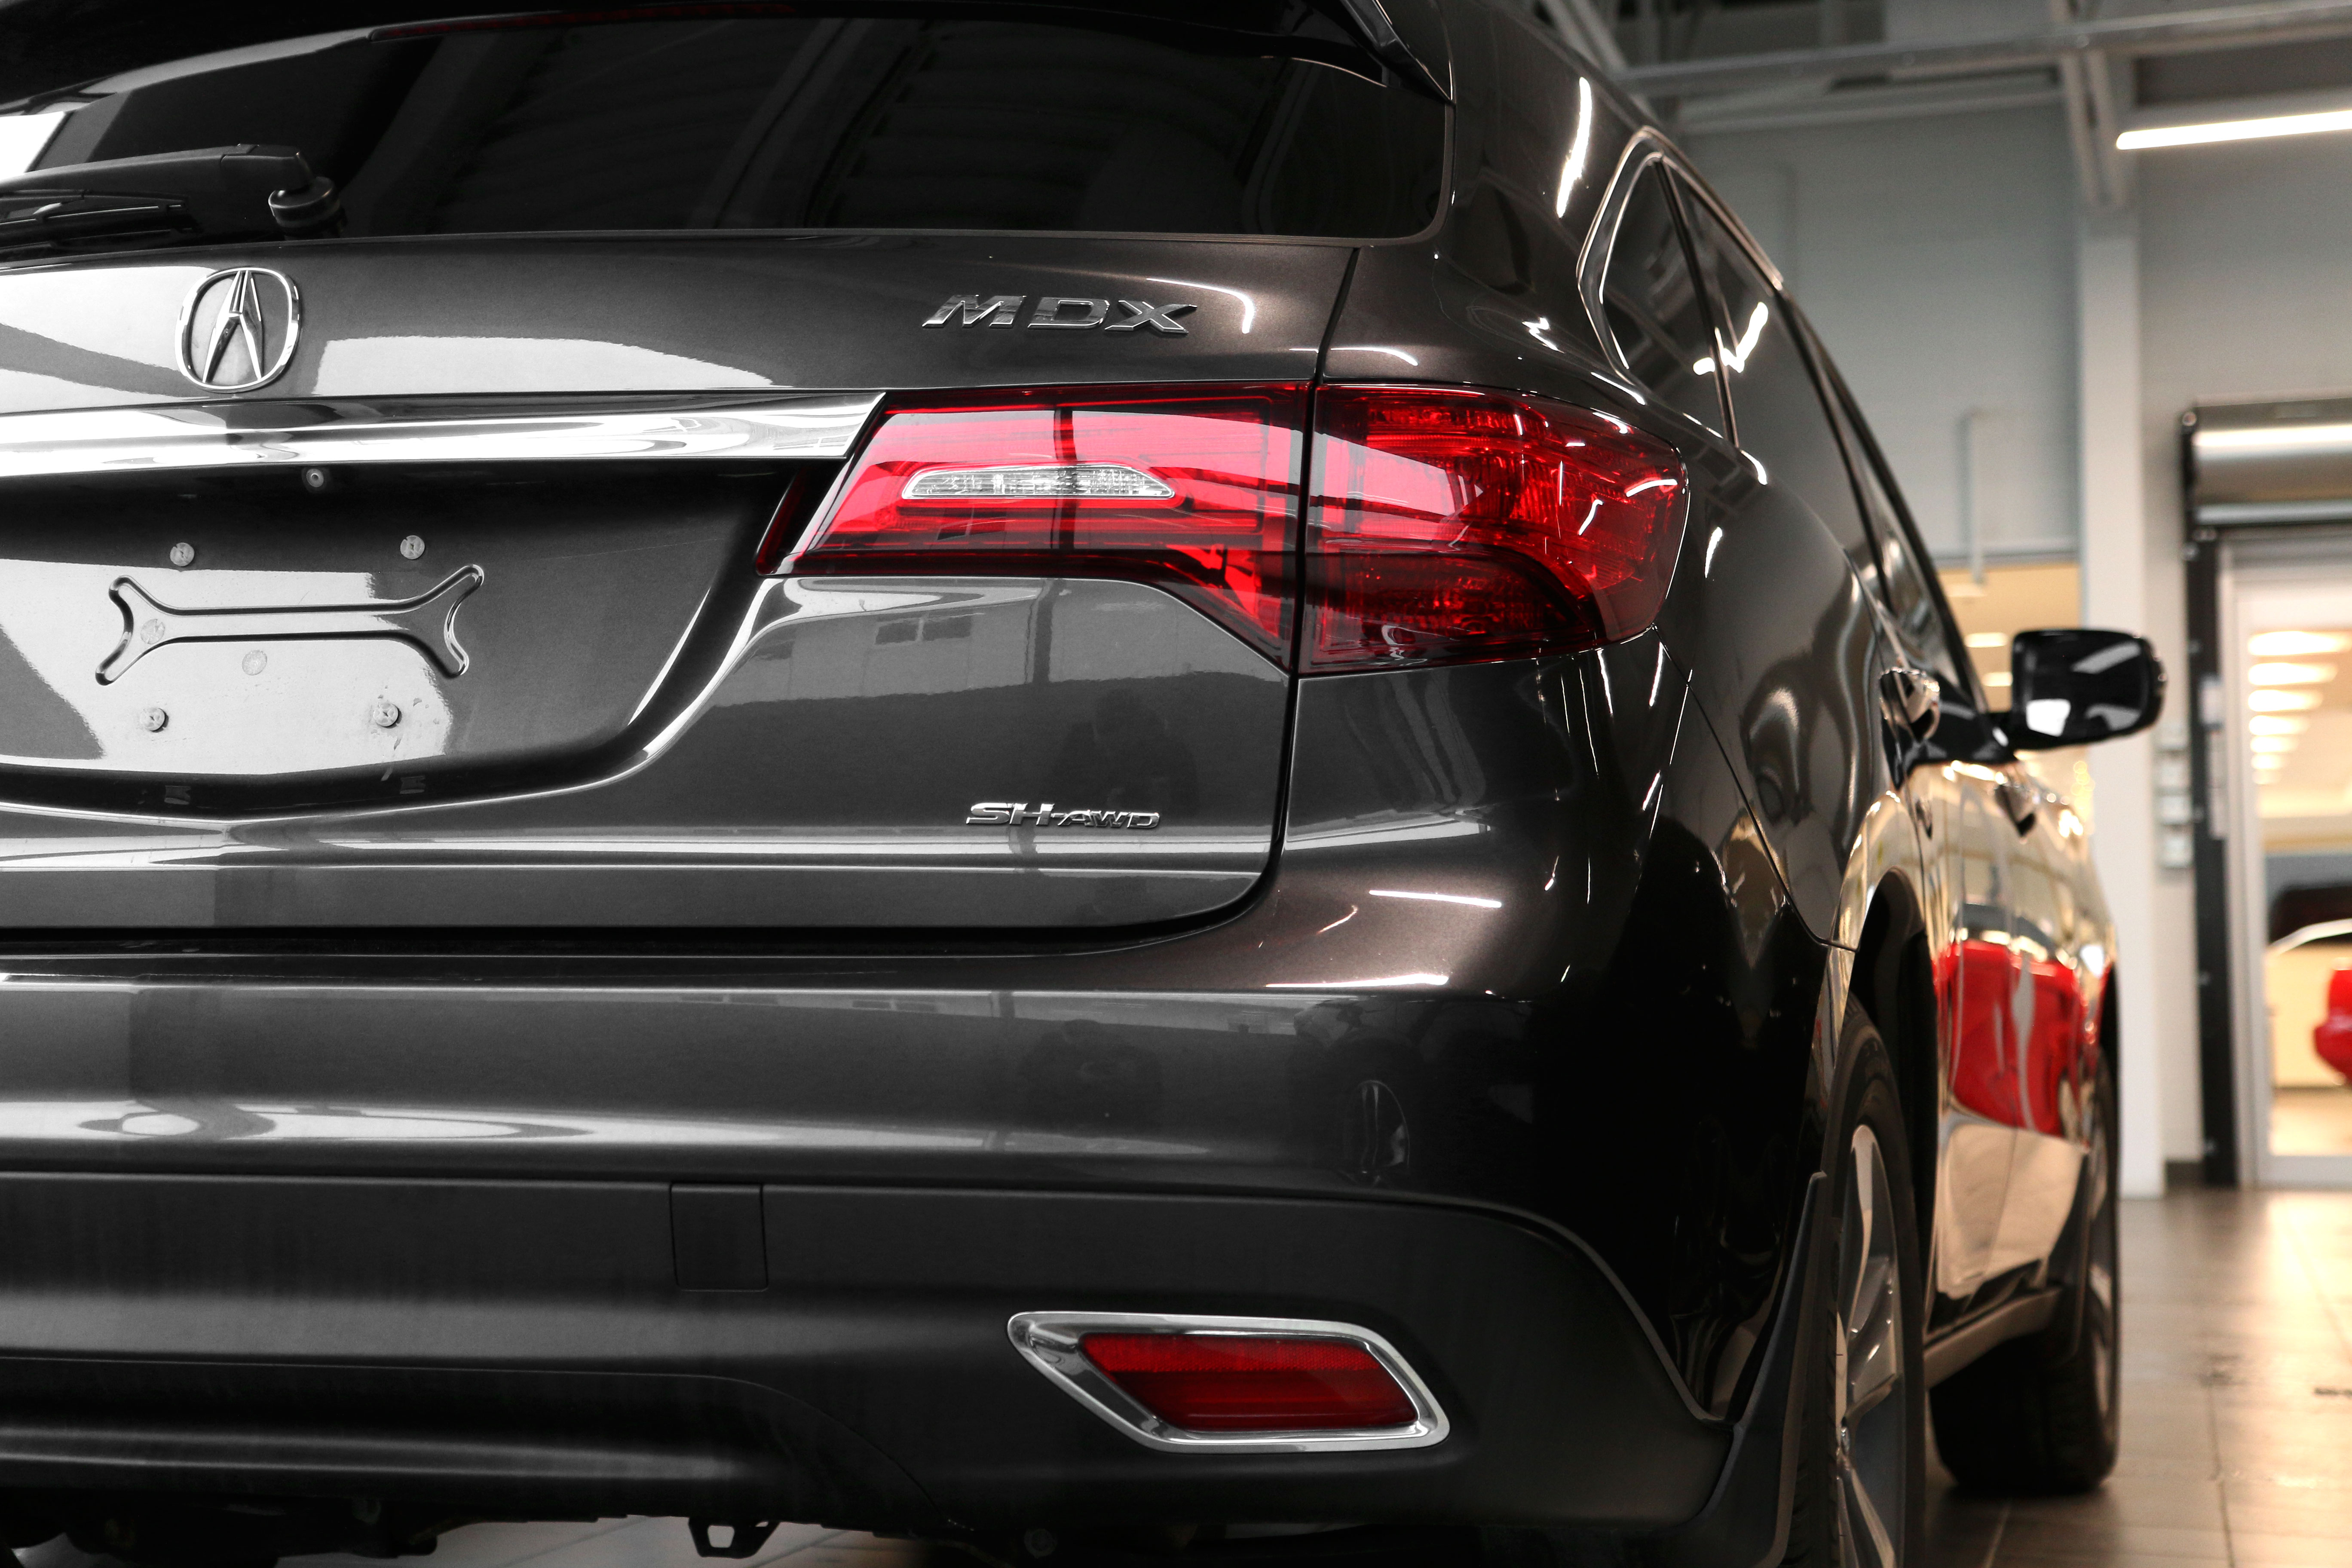 sport with news lease mdx model acura breaks the motor norm hybrid